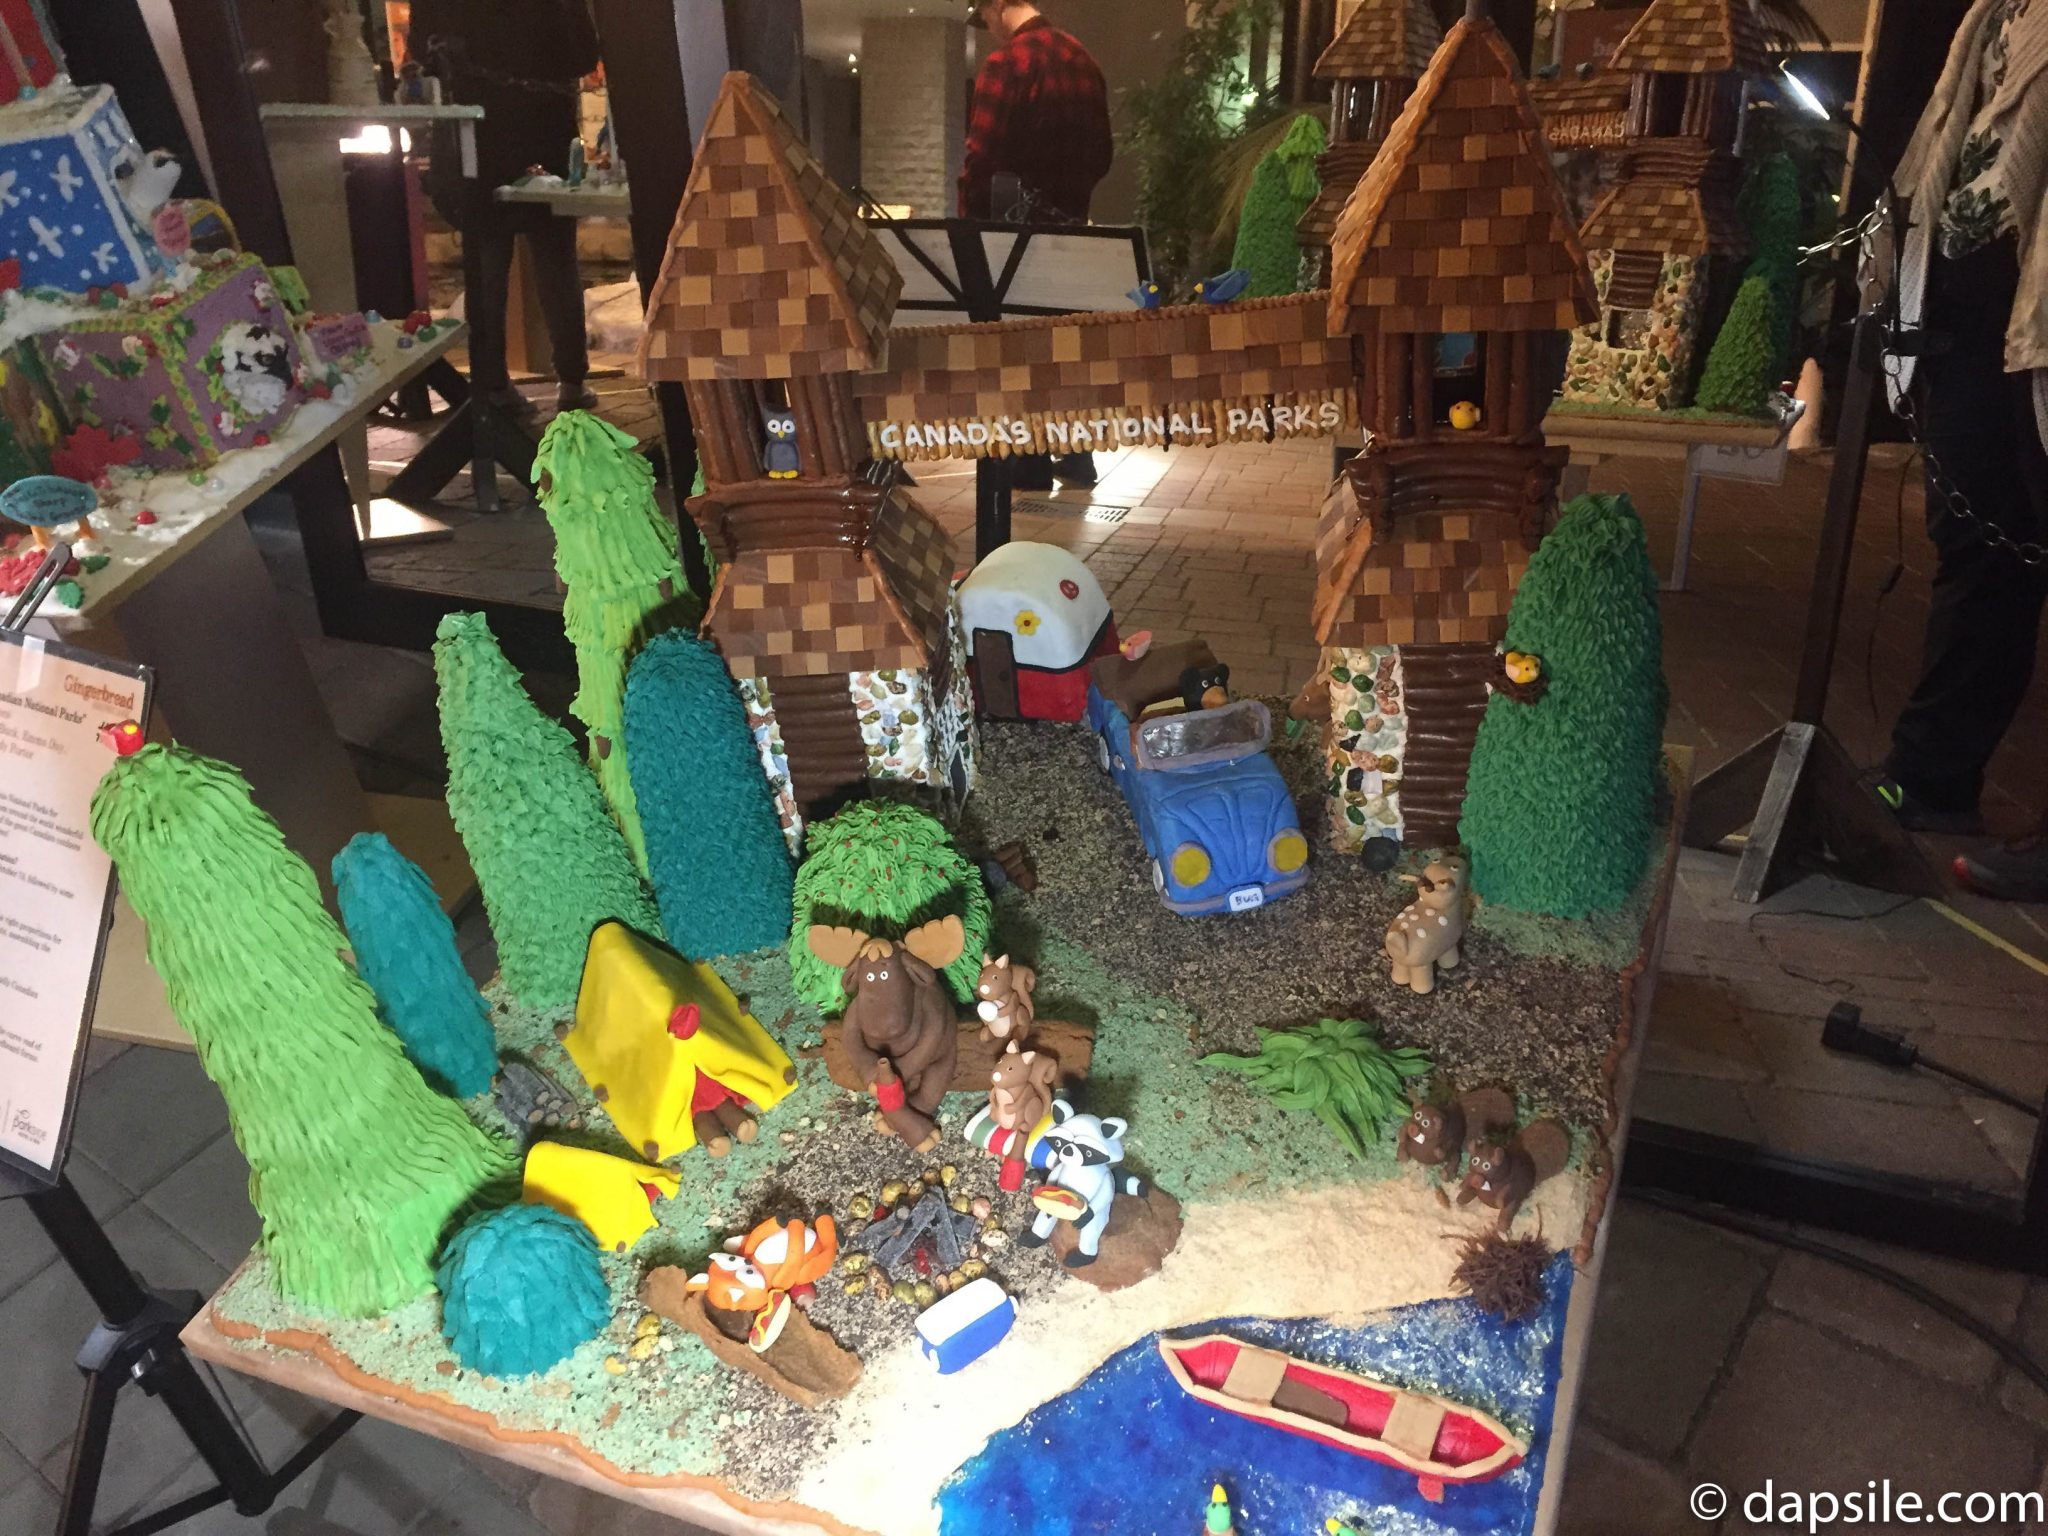 Things to Do in Victoria Gingerbread House Display Canada National Parks